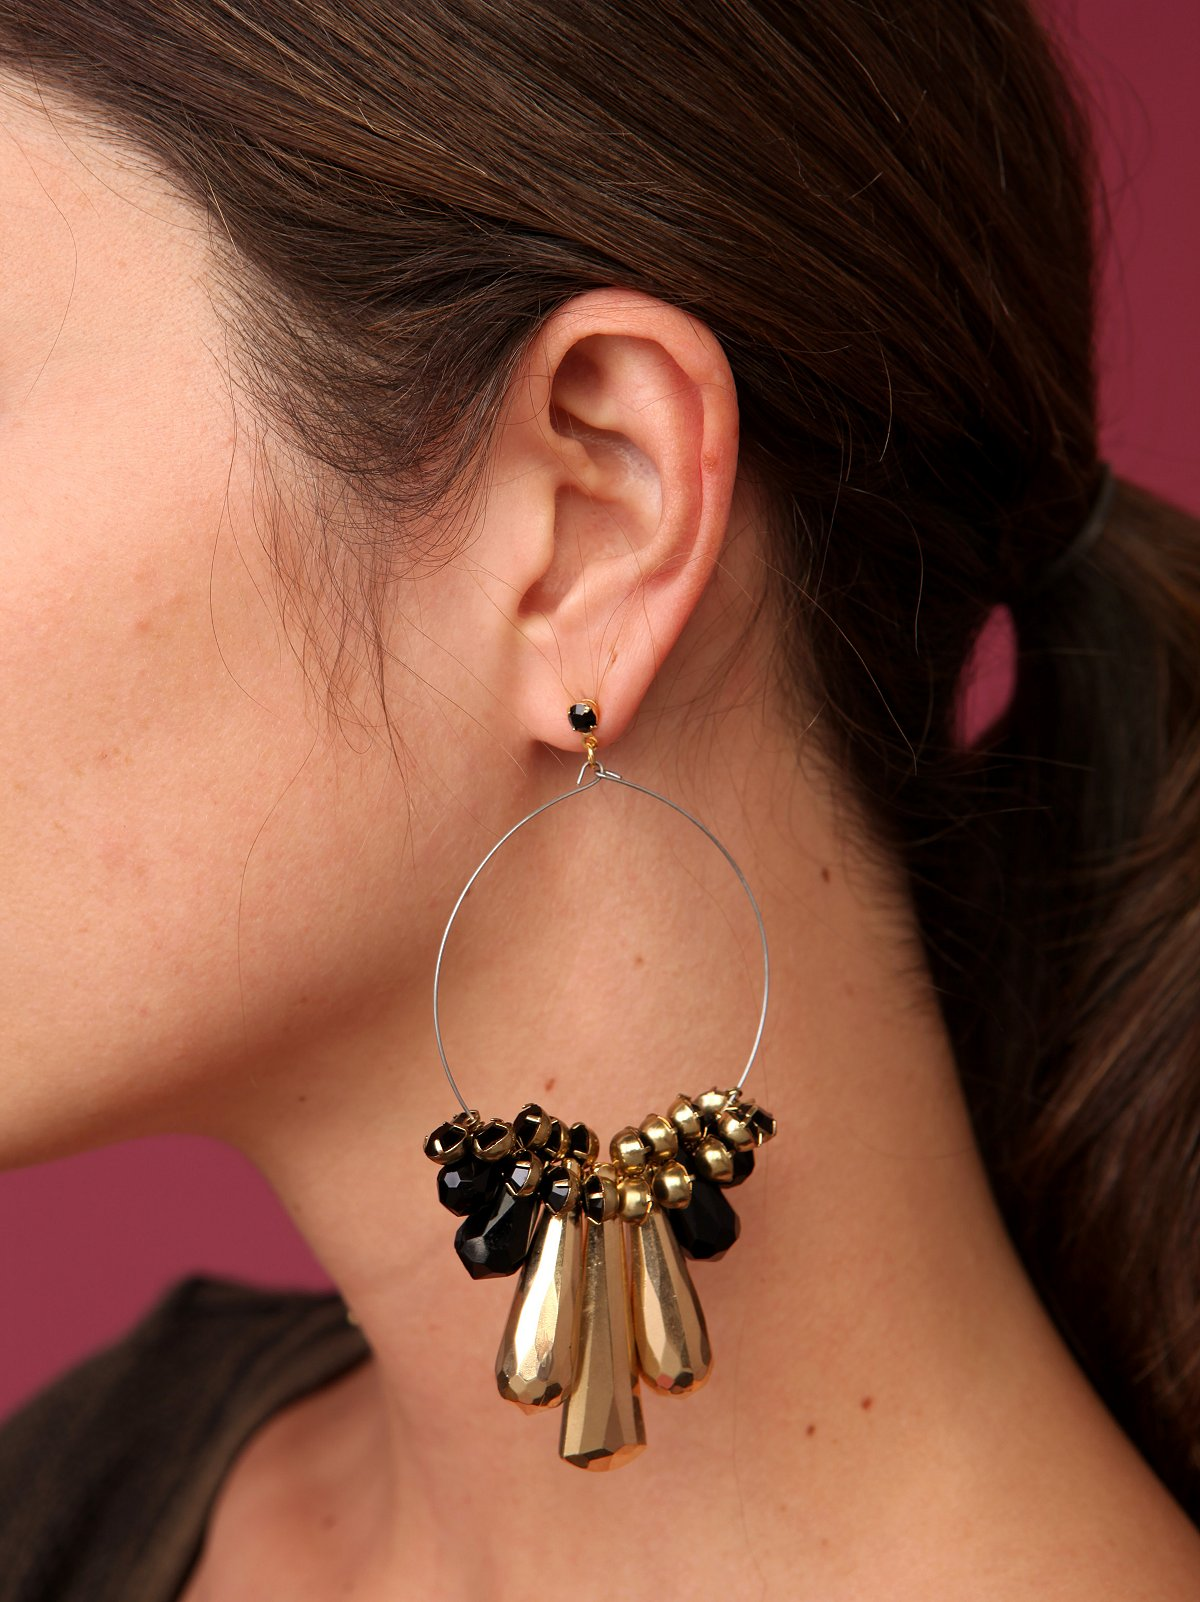 Strike Gold Earrings - removed bc vendor unable to fulfill the order 12/22